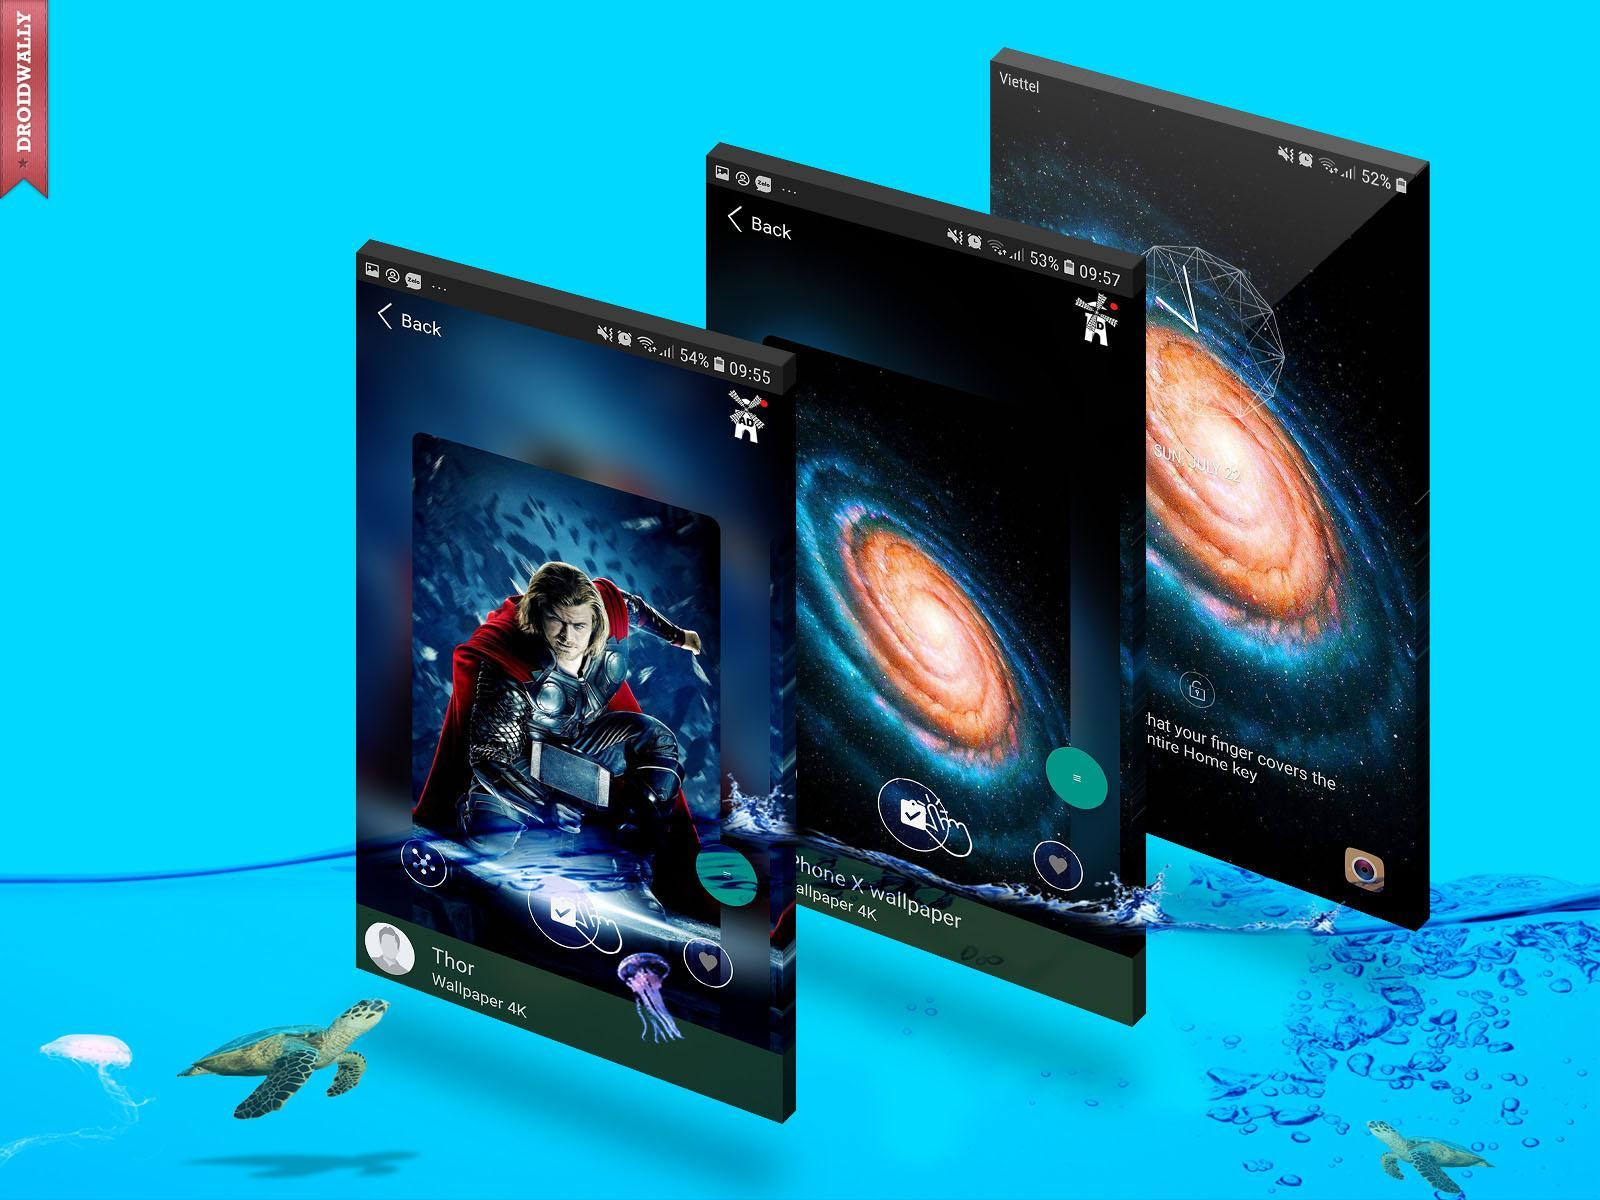 Droidwally Live Wallpaper Ringtone Awesome Beta For Android Apk Download